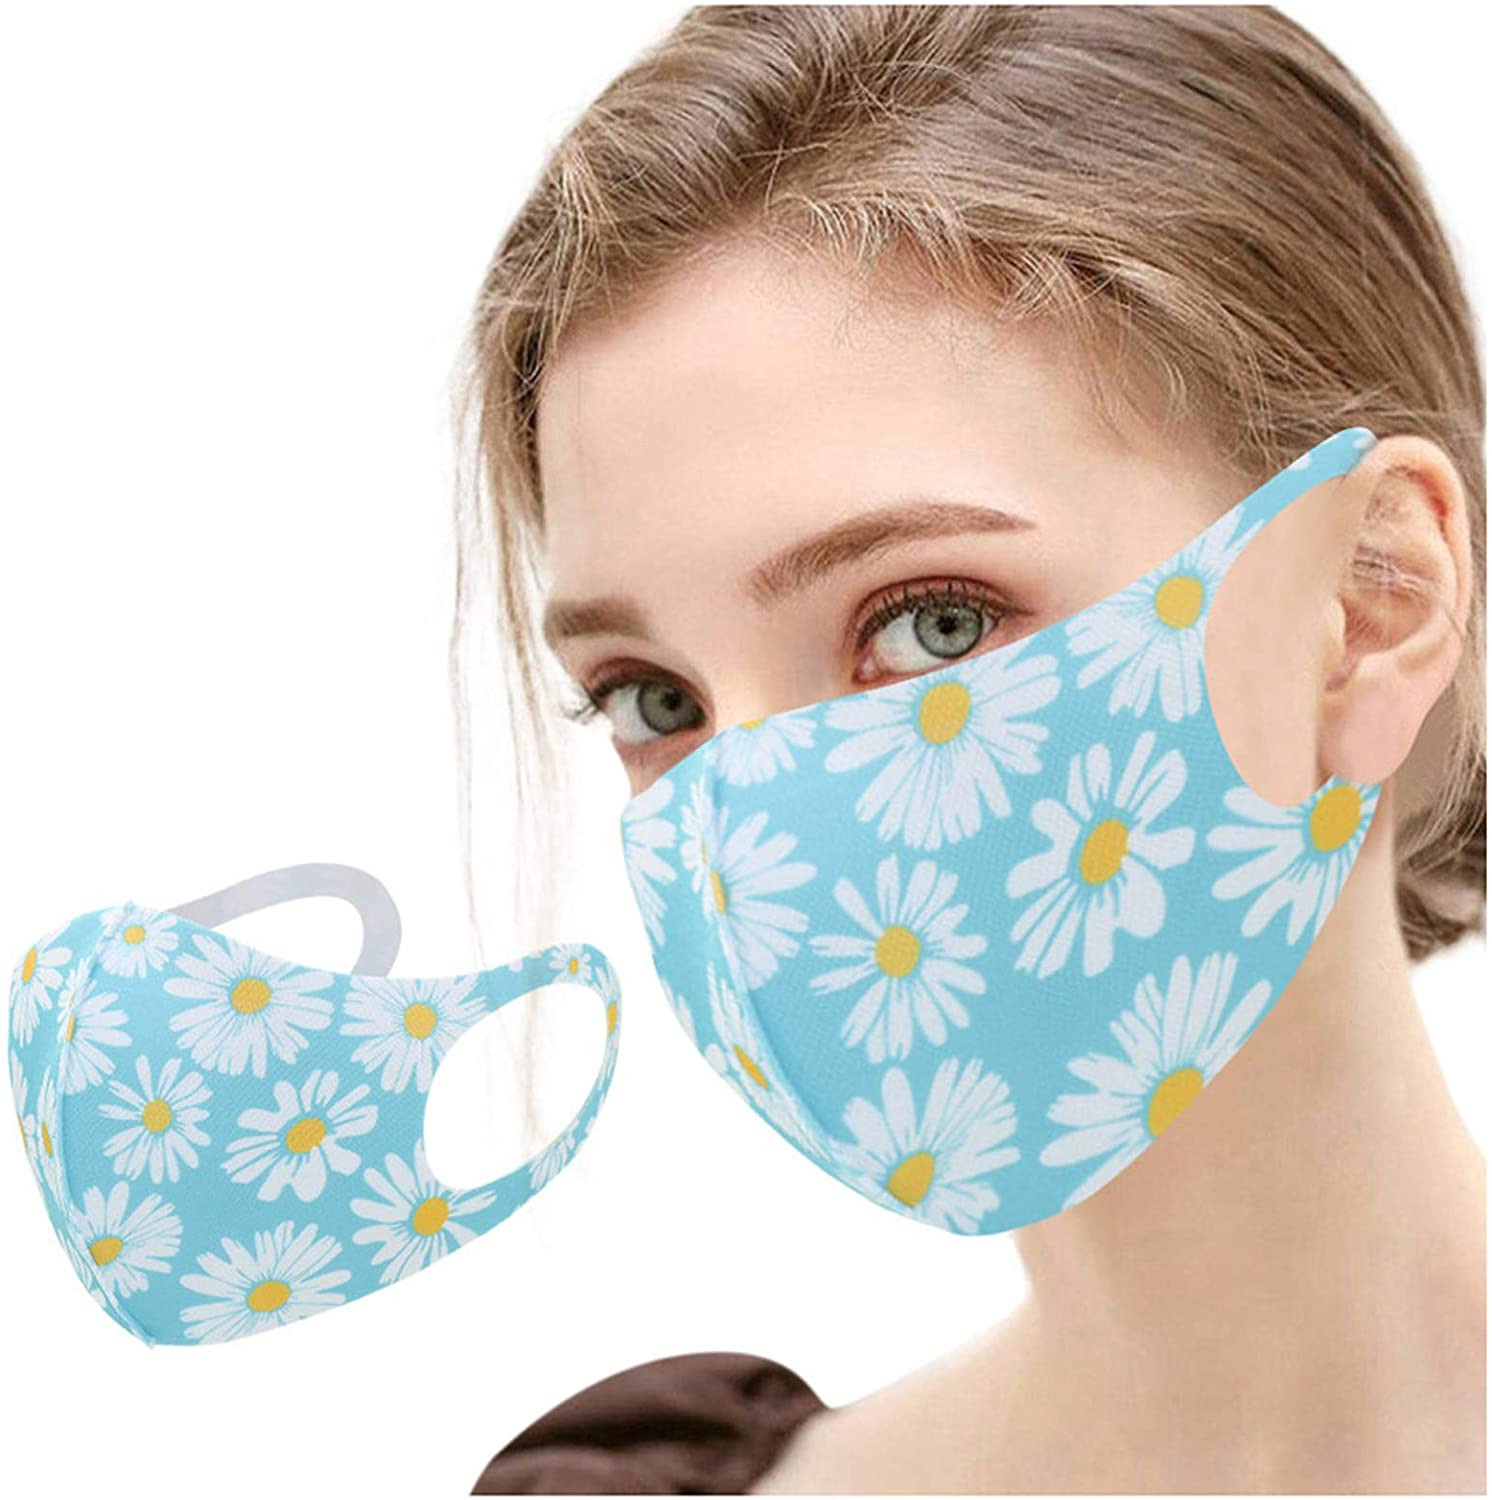 Selinora Printed Cotton Face_Masks Reusable Cloth Fabric,Adult Printing Face Protection Fashion Balaclava for Women Men